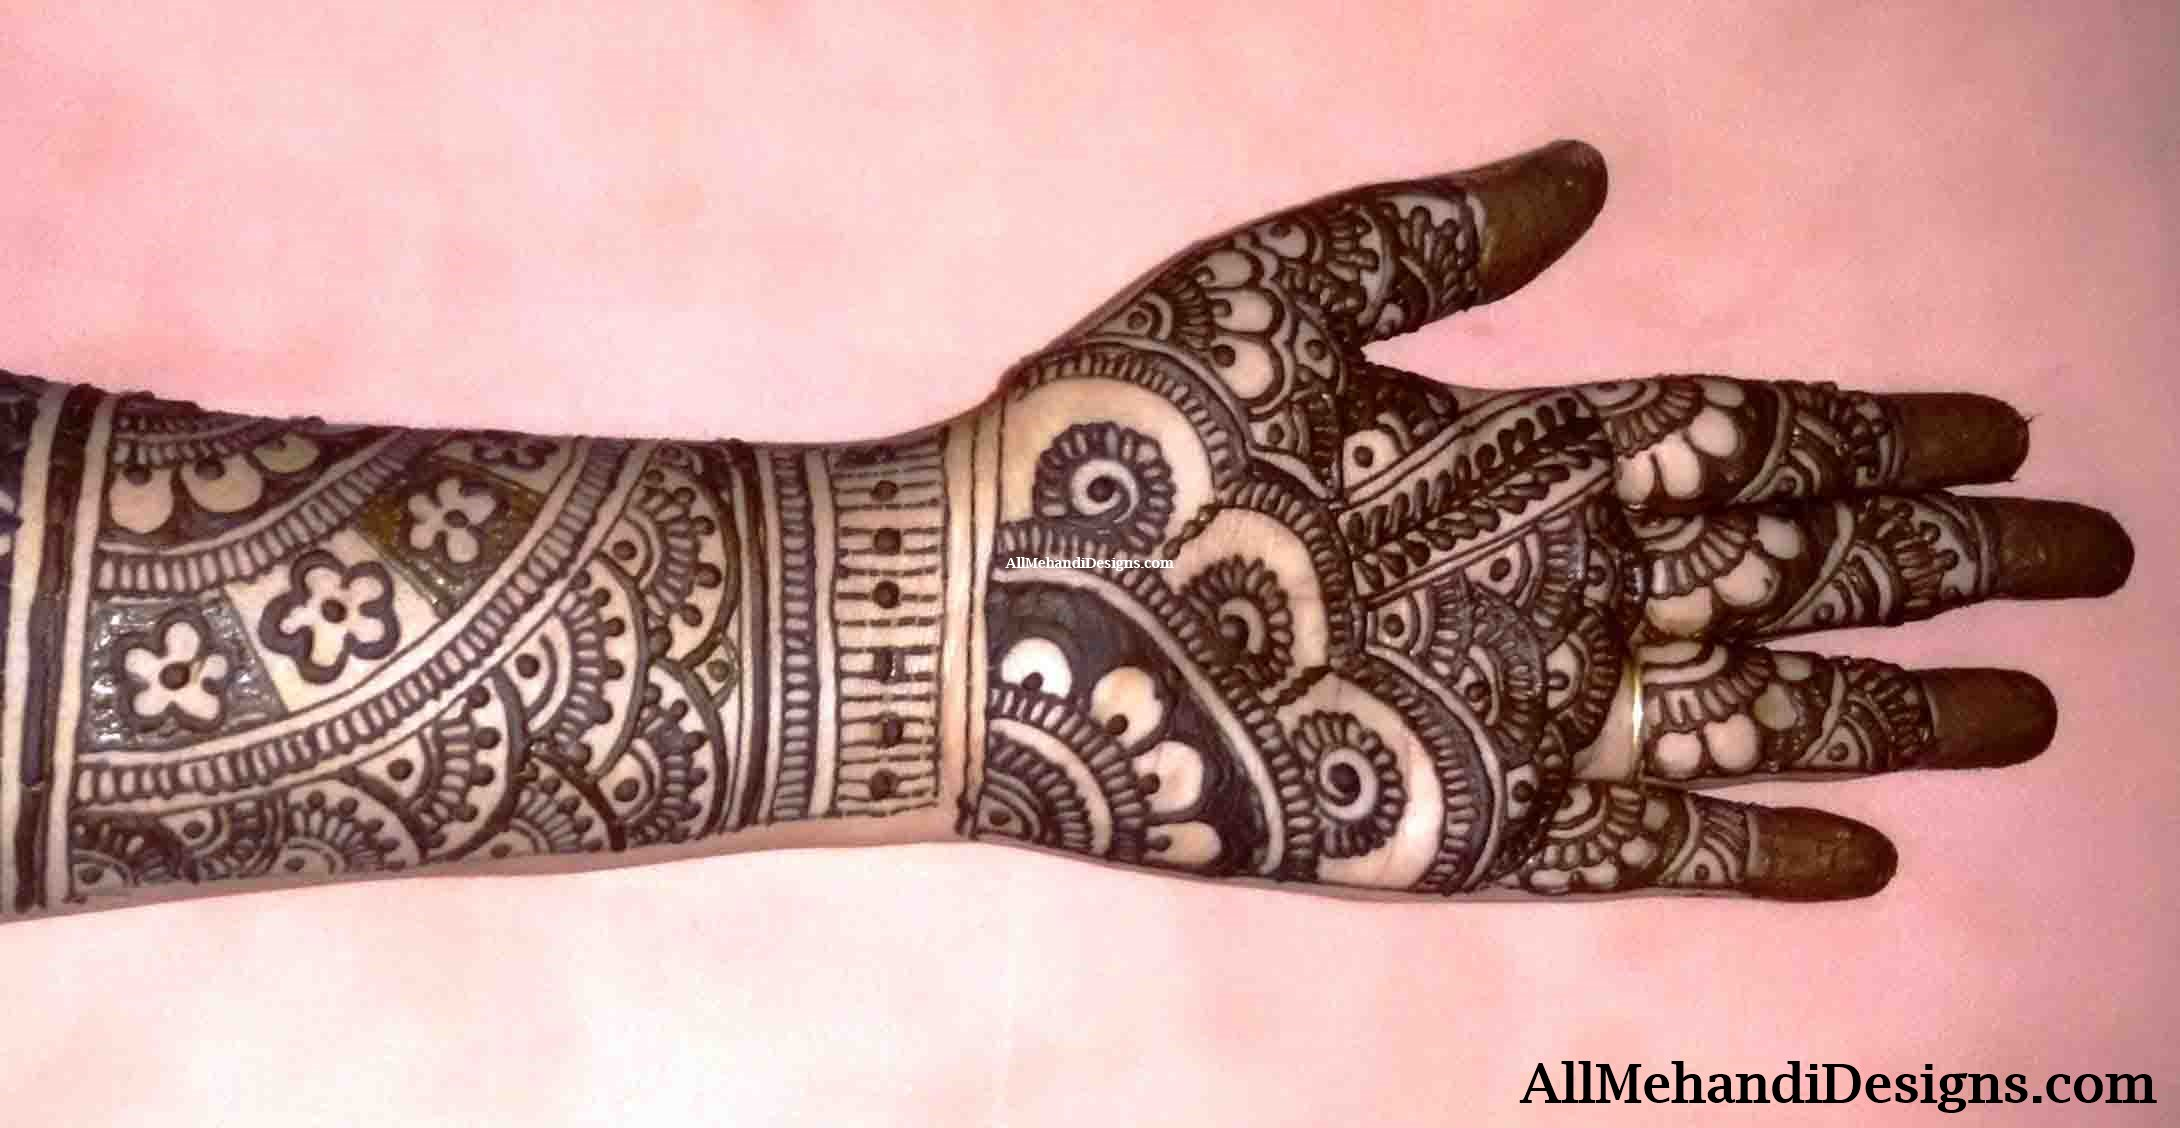 Mehndi Designs For Palm : Pakistani mehndi designs henna patterns pictures